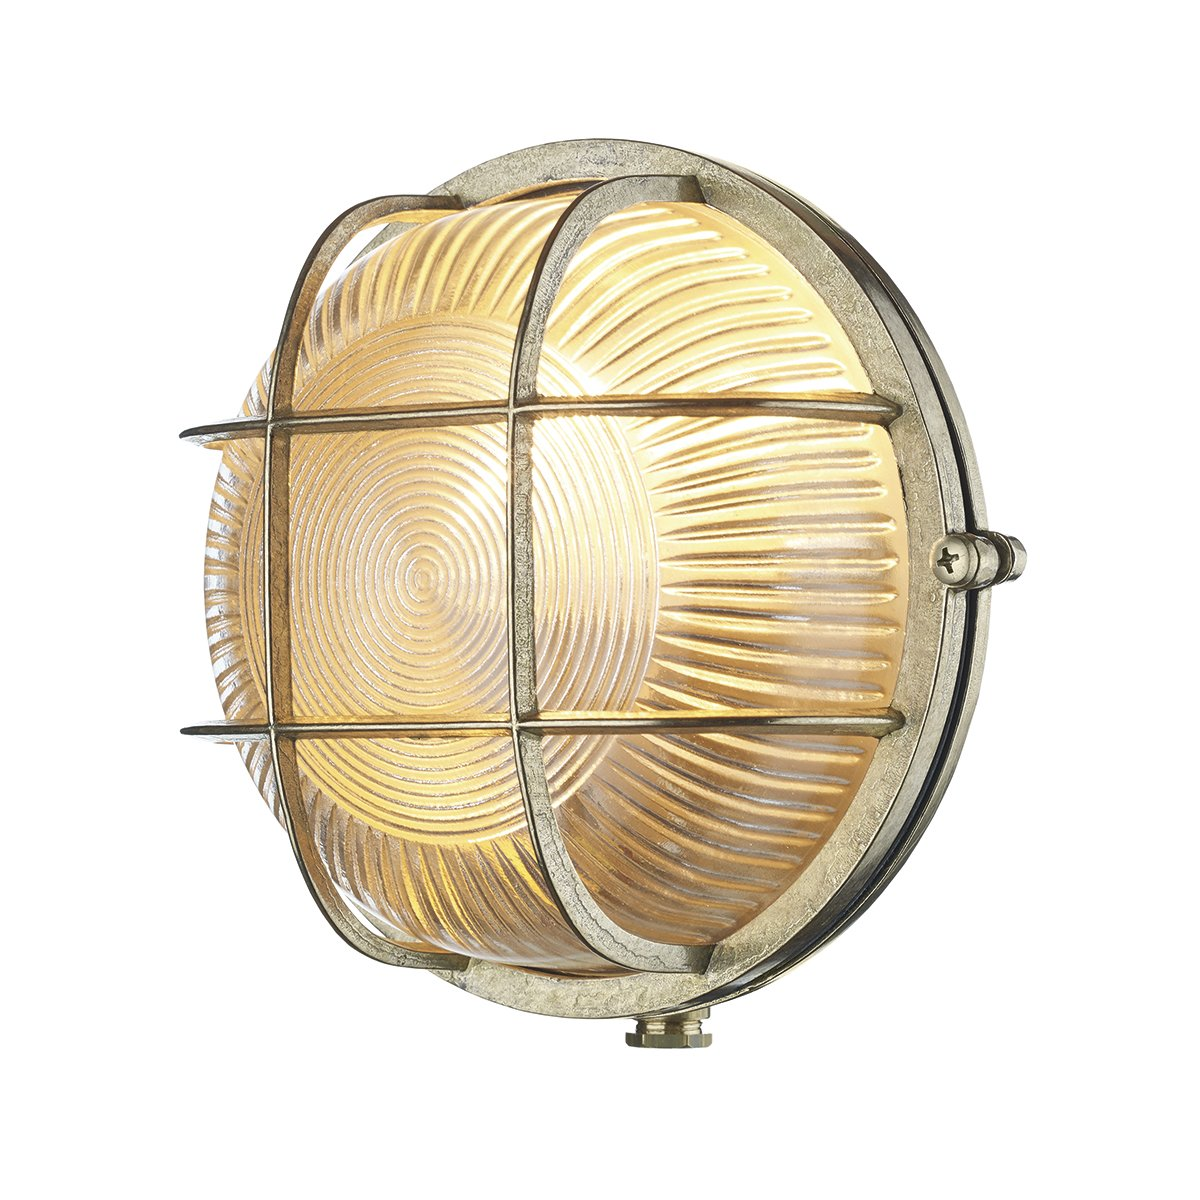 David Hunt Lighting ADM5040 Admiral 1 Light Round Wall Light Brass